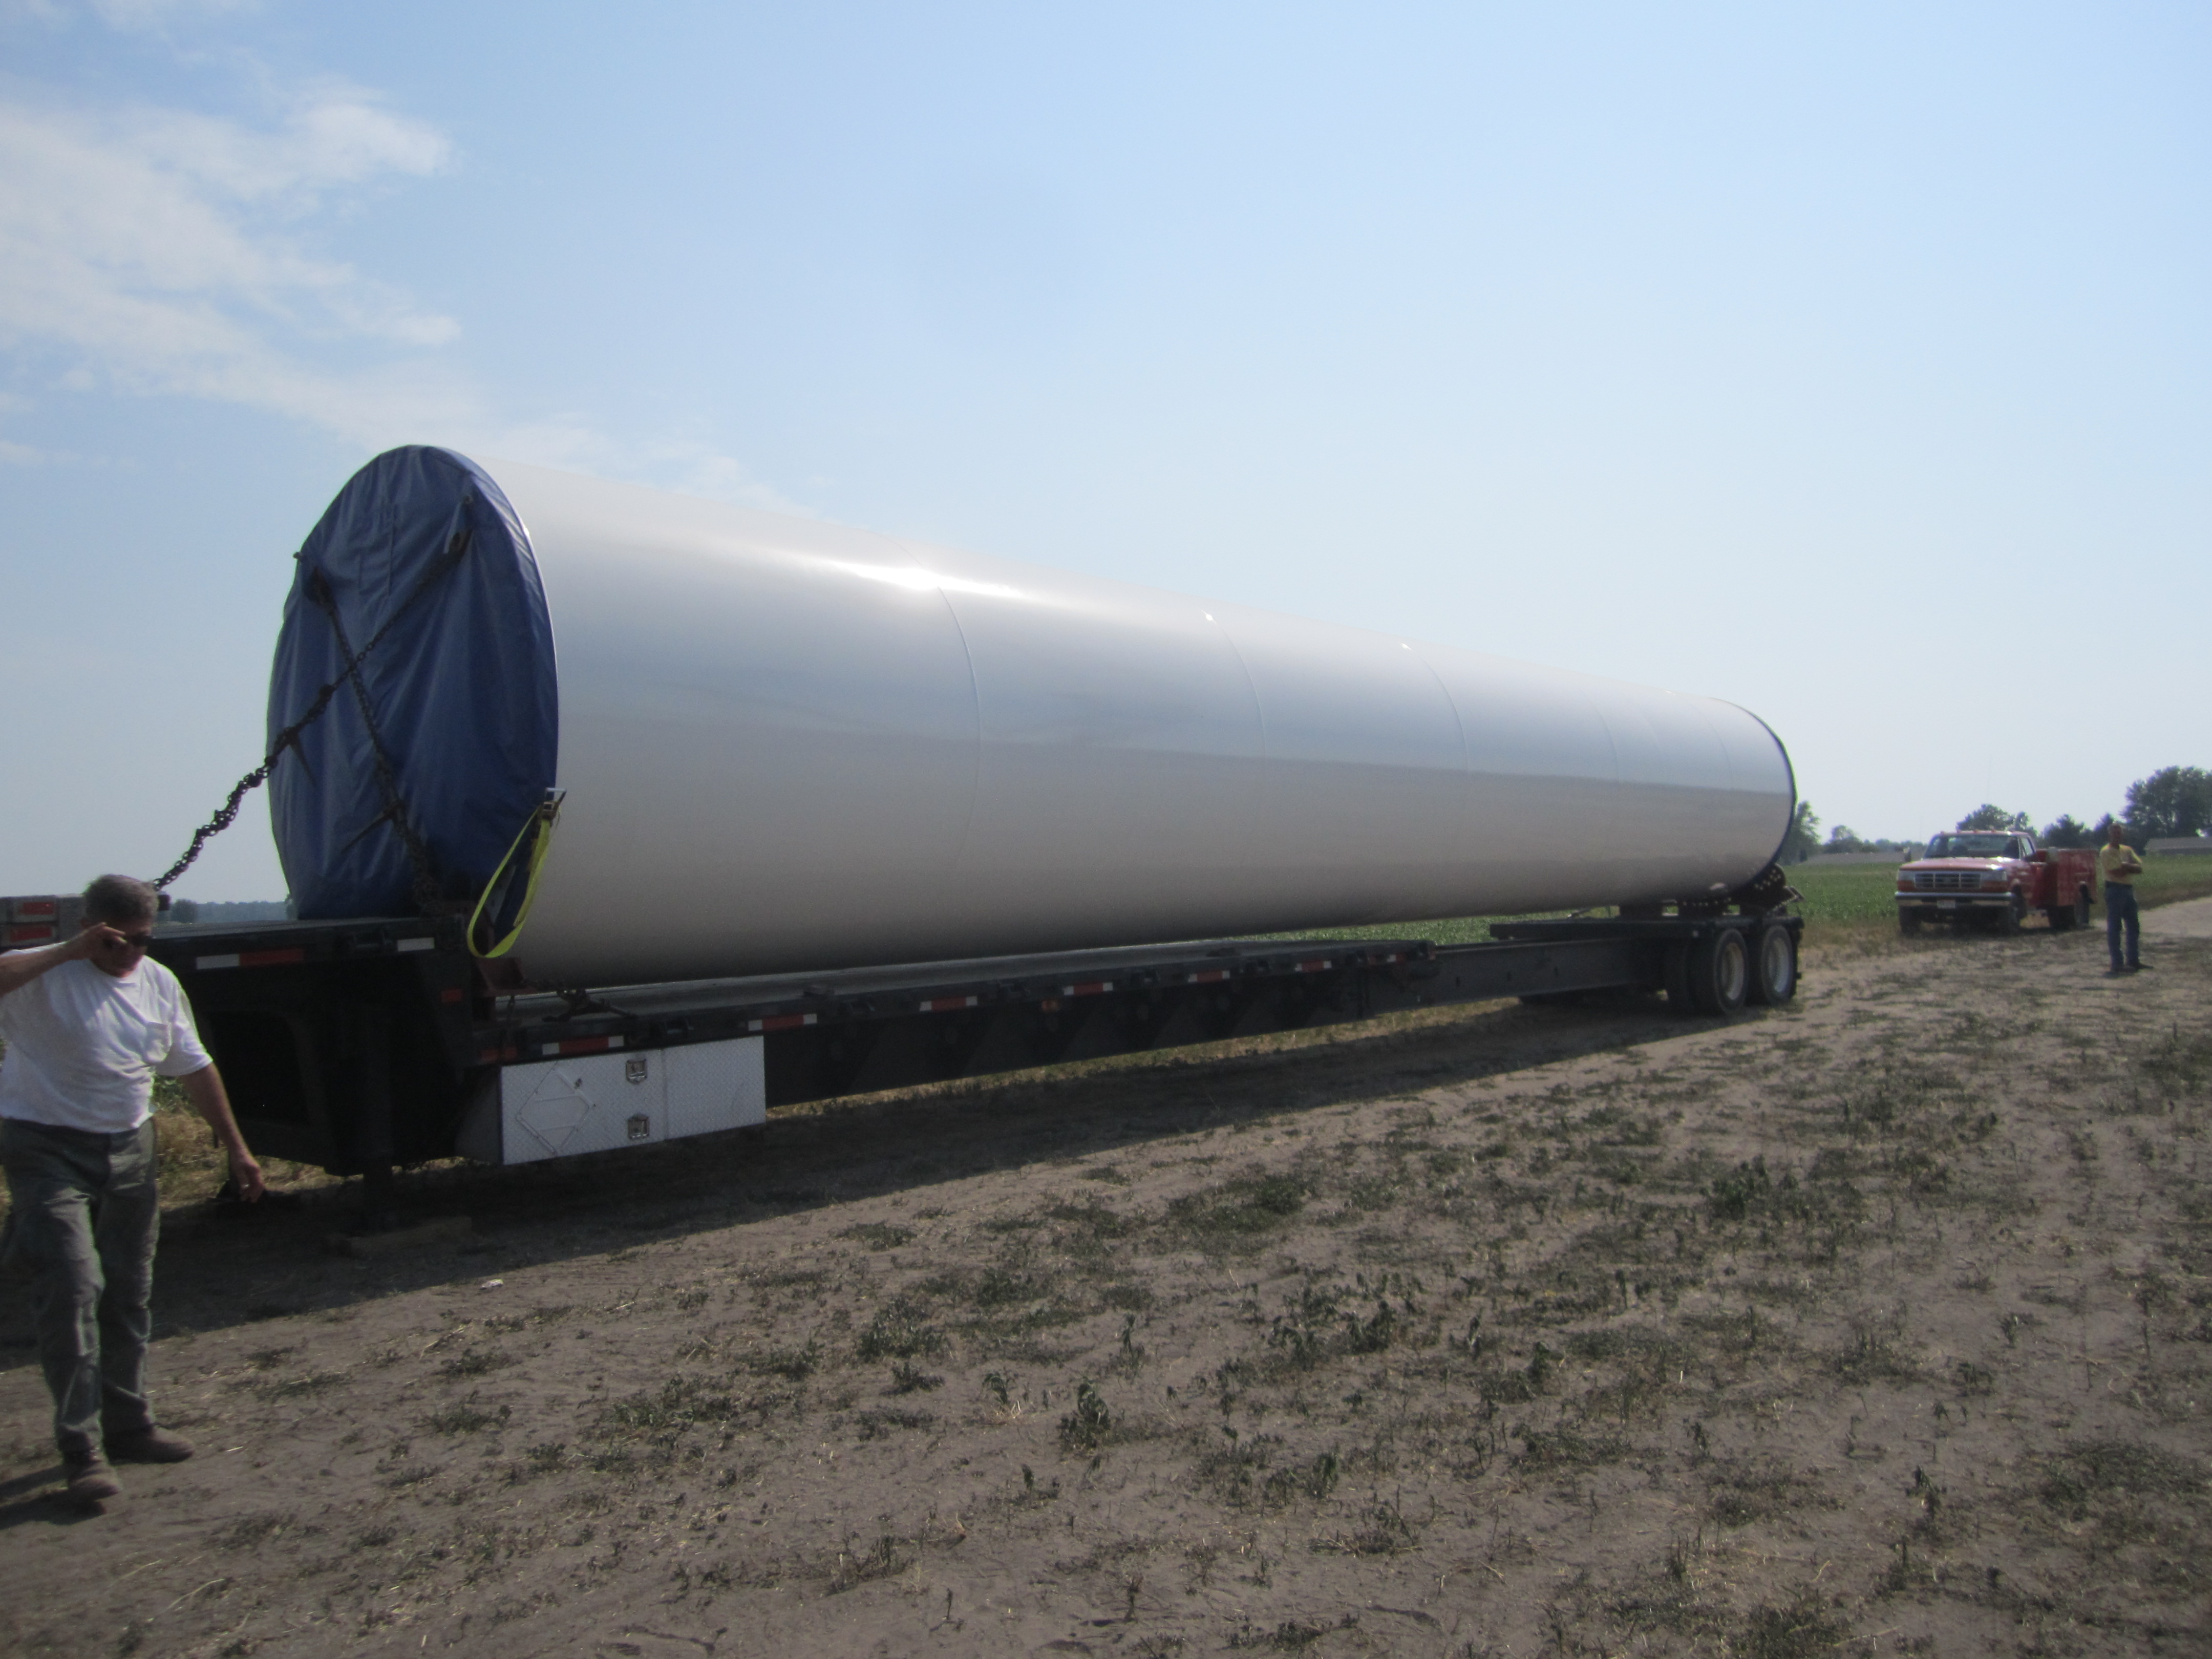 Picture of a windmill blade being transported